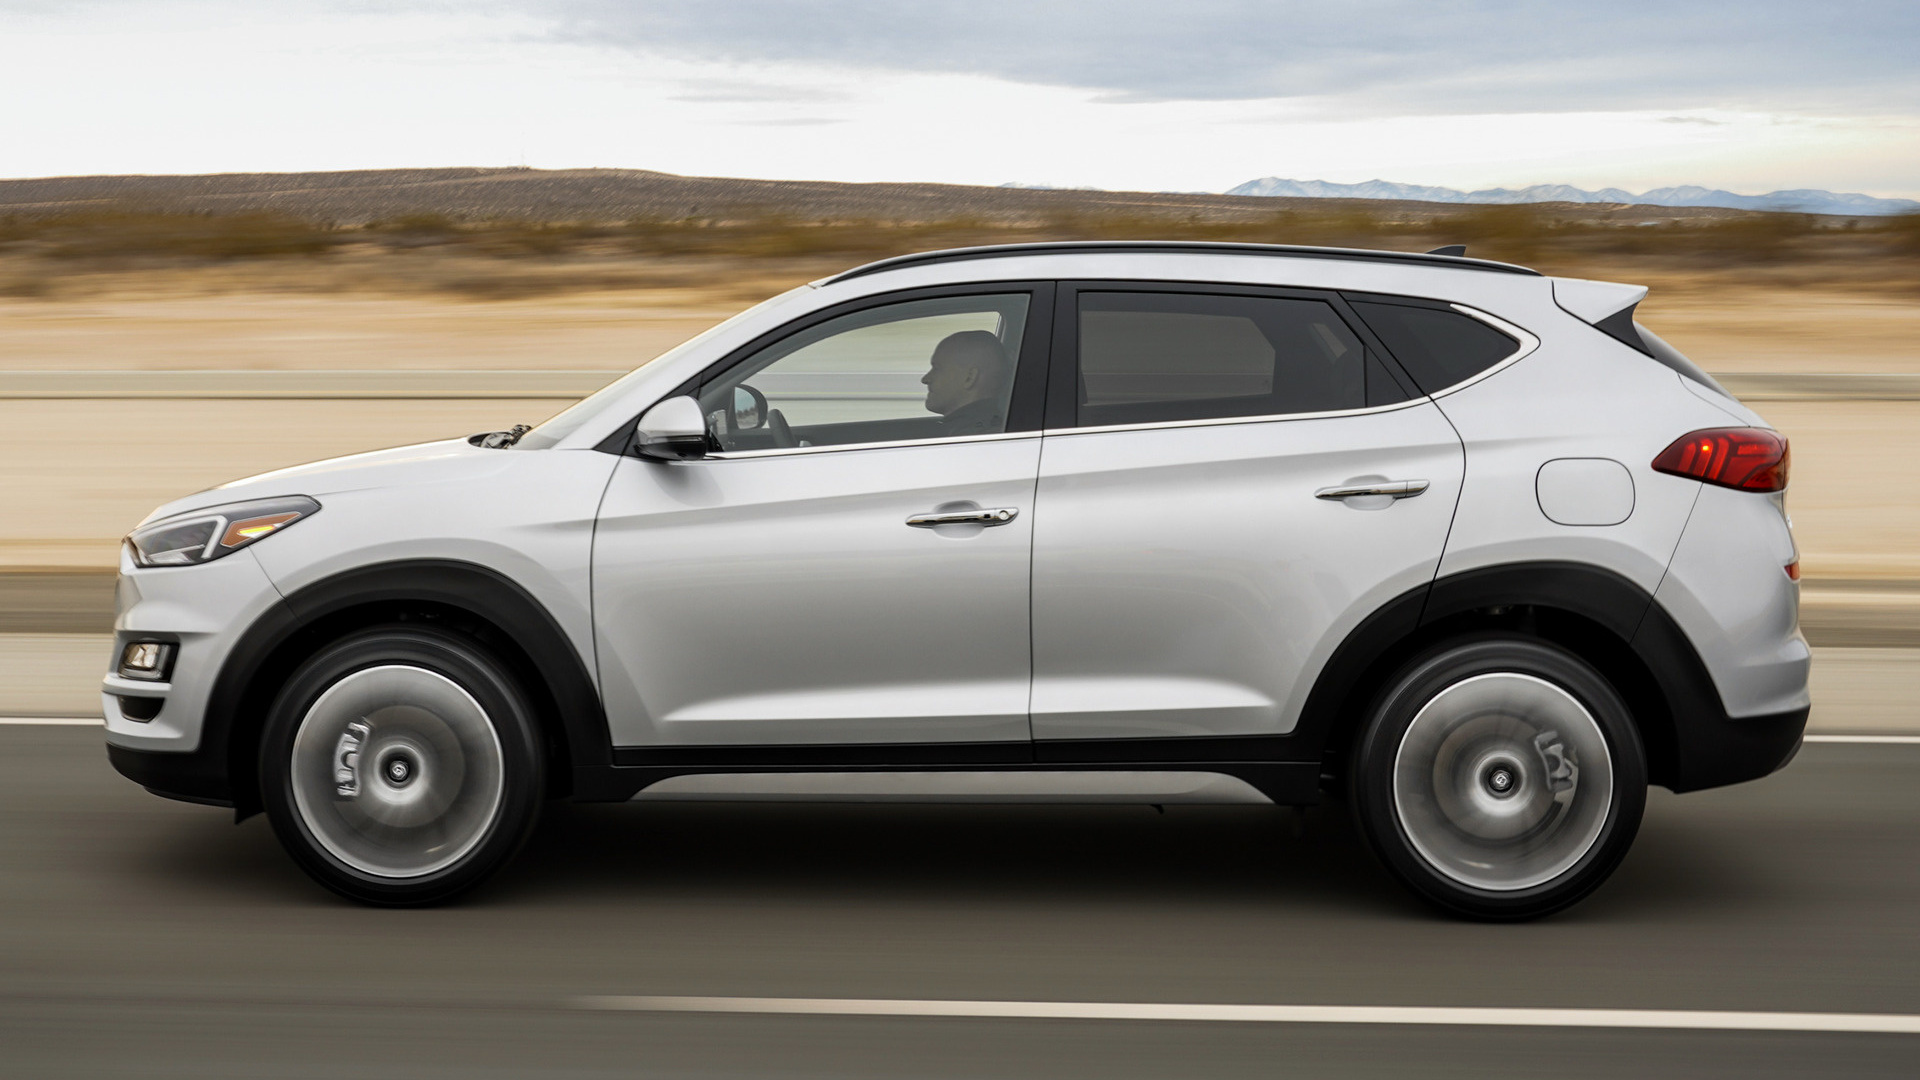 2019 hyundai tucson us wallpapers and hd images car. Black Bedroom Furniture Sets. Home Design Ideas